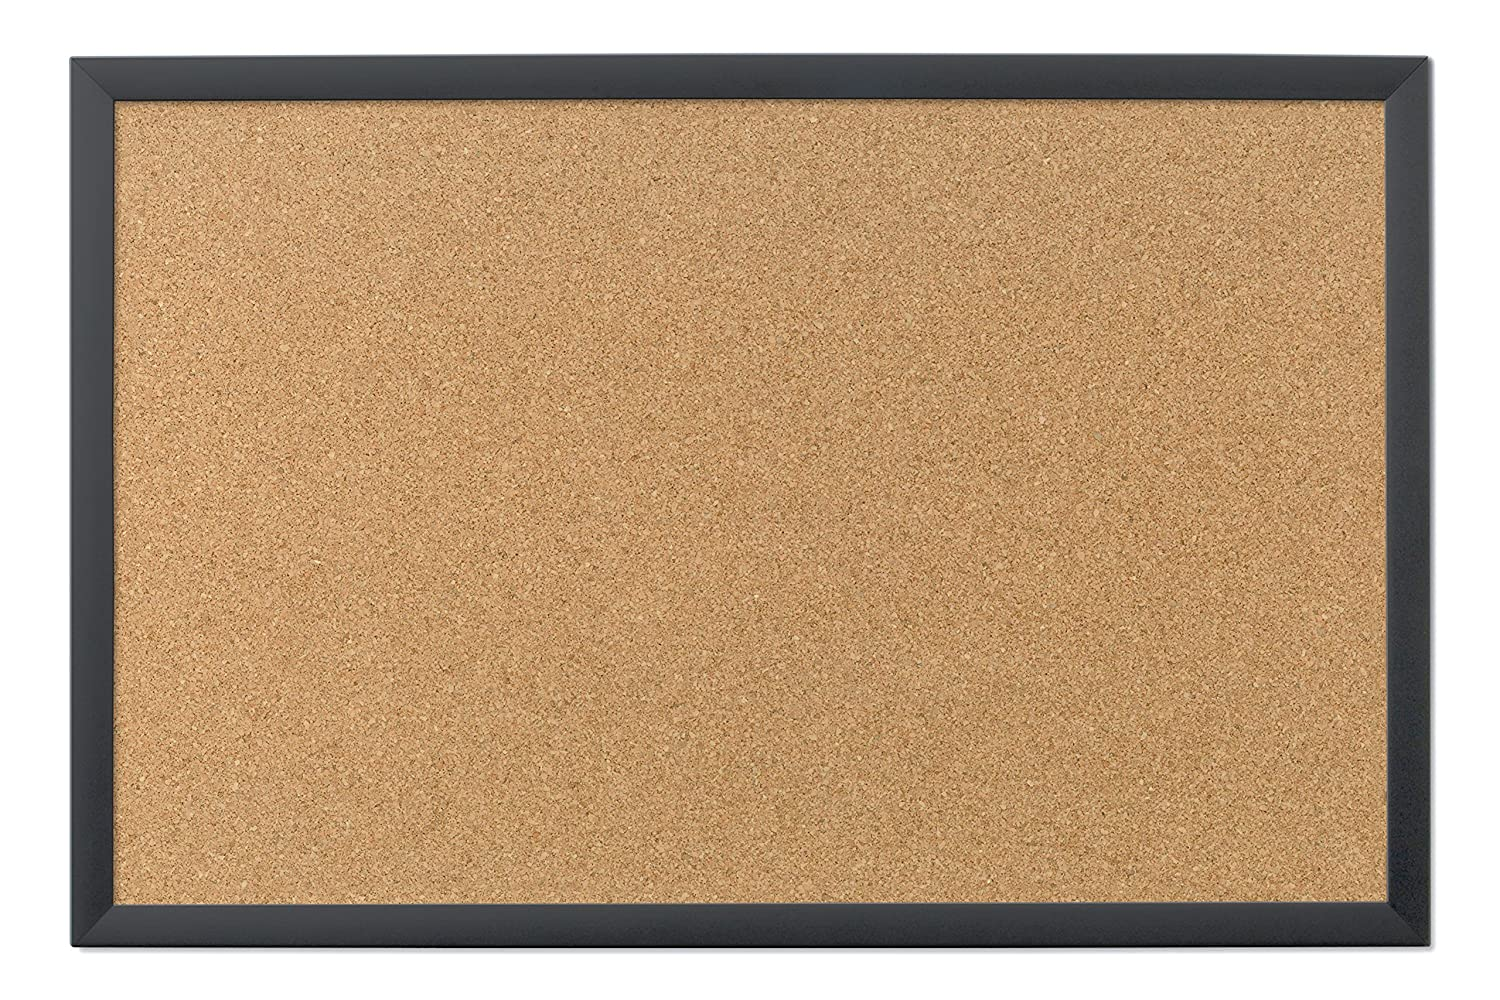 Amazon.com : U Brands Cork Bulletin Board, 35 x 23 Inches, Black Frame :  Office Products